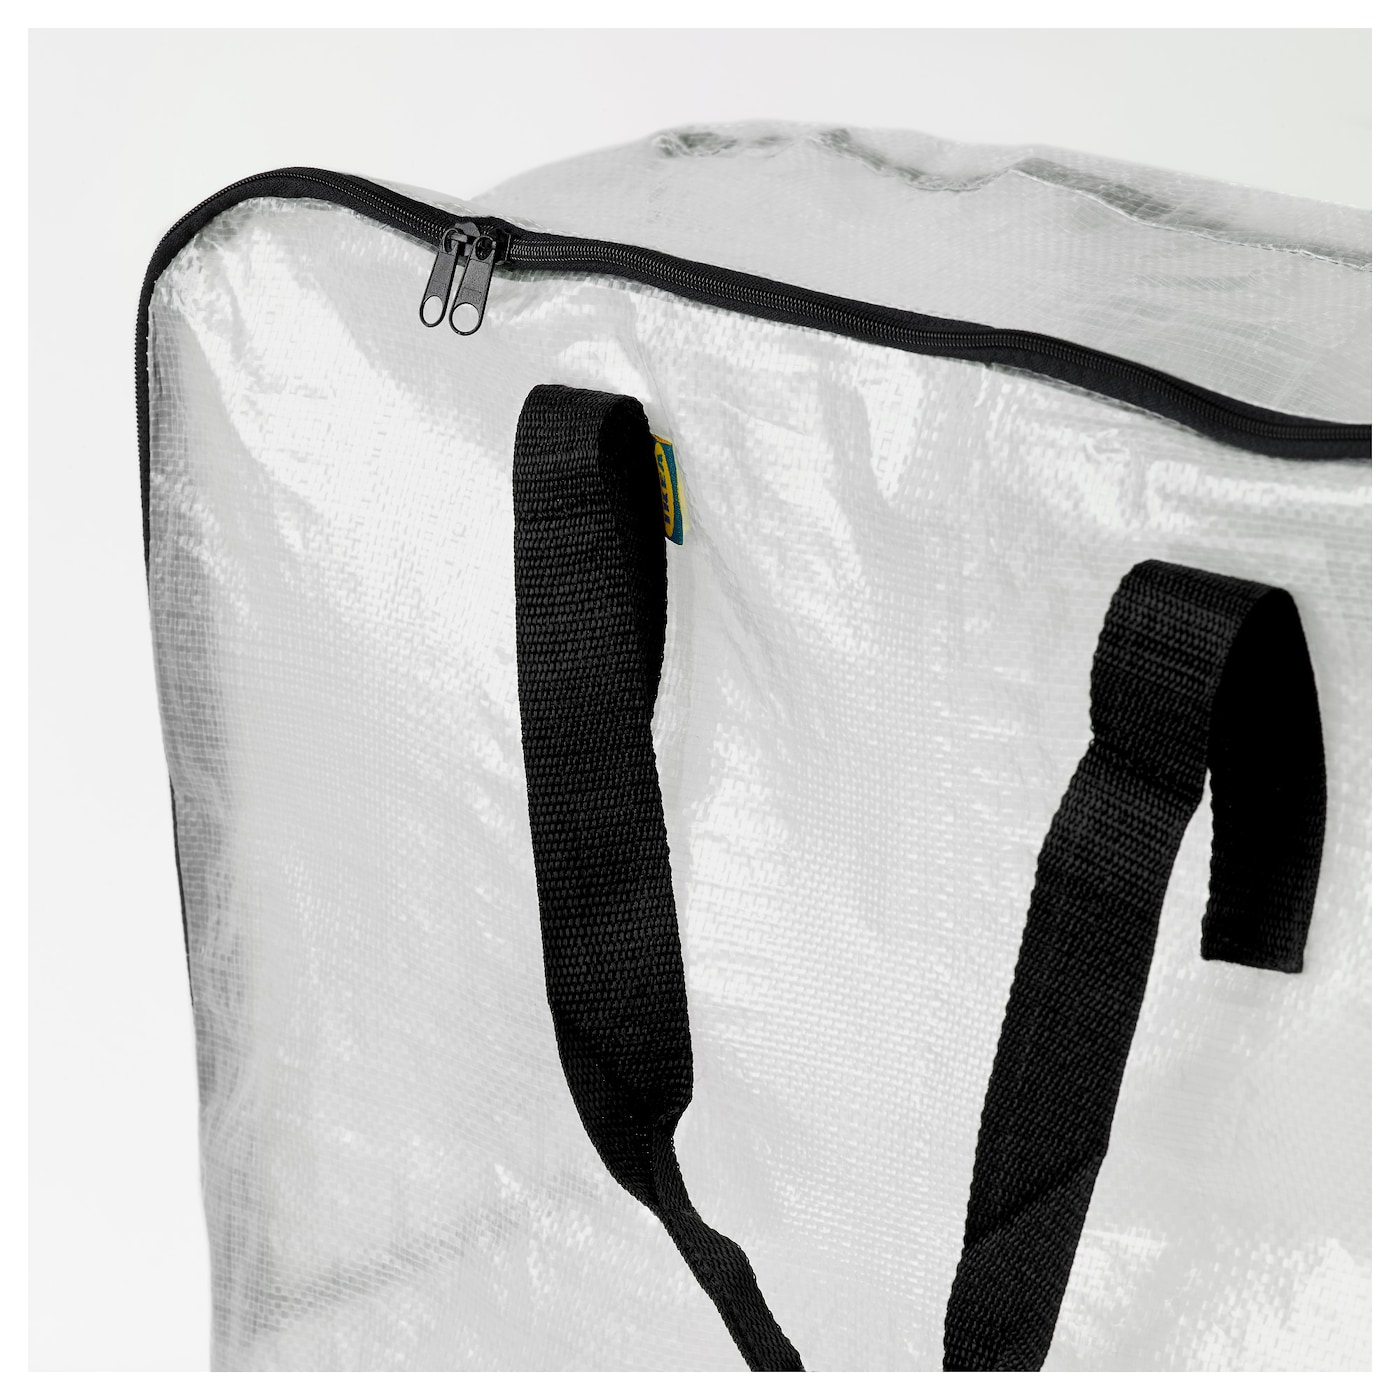 Ikea Dimpa Storage Bag Protects Contents Against Moisture And Dirt Also Suitable For Waste Sorting